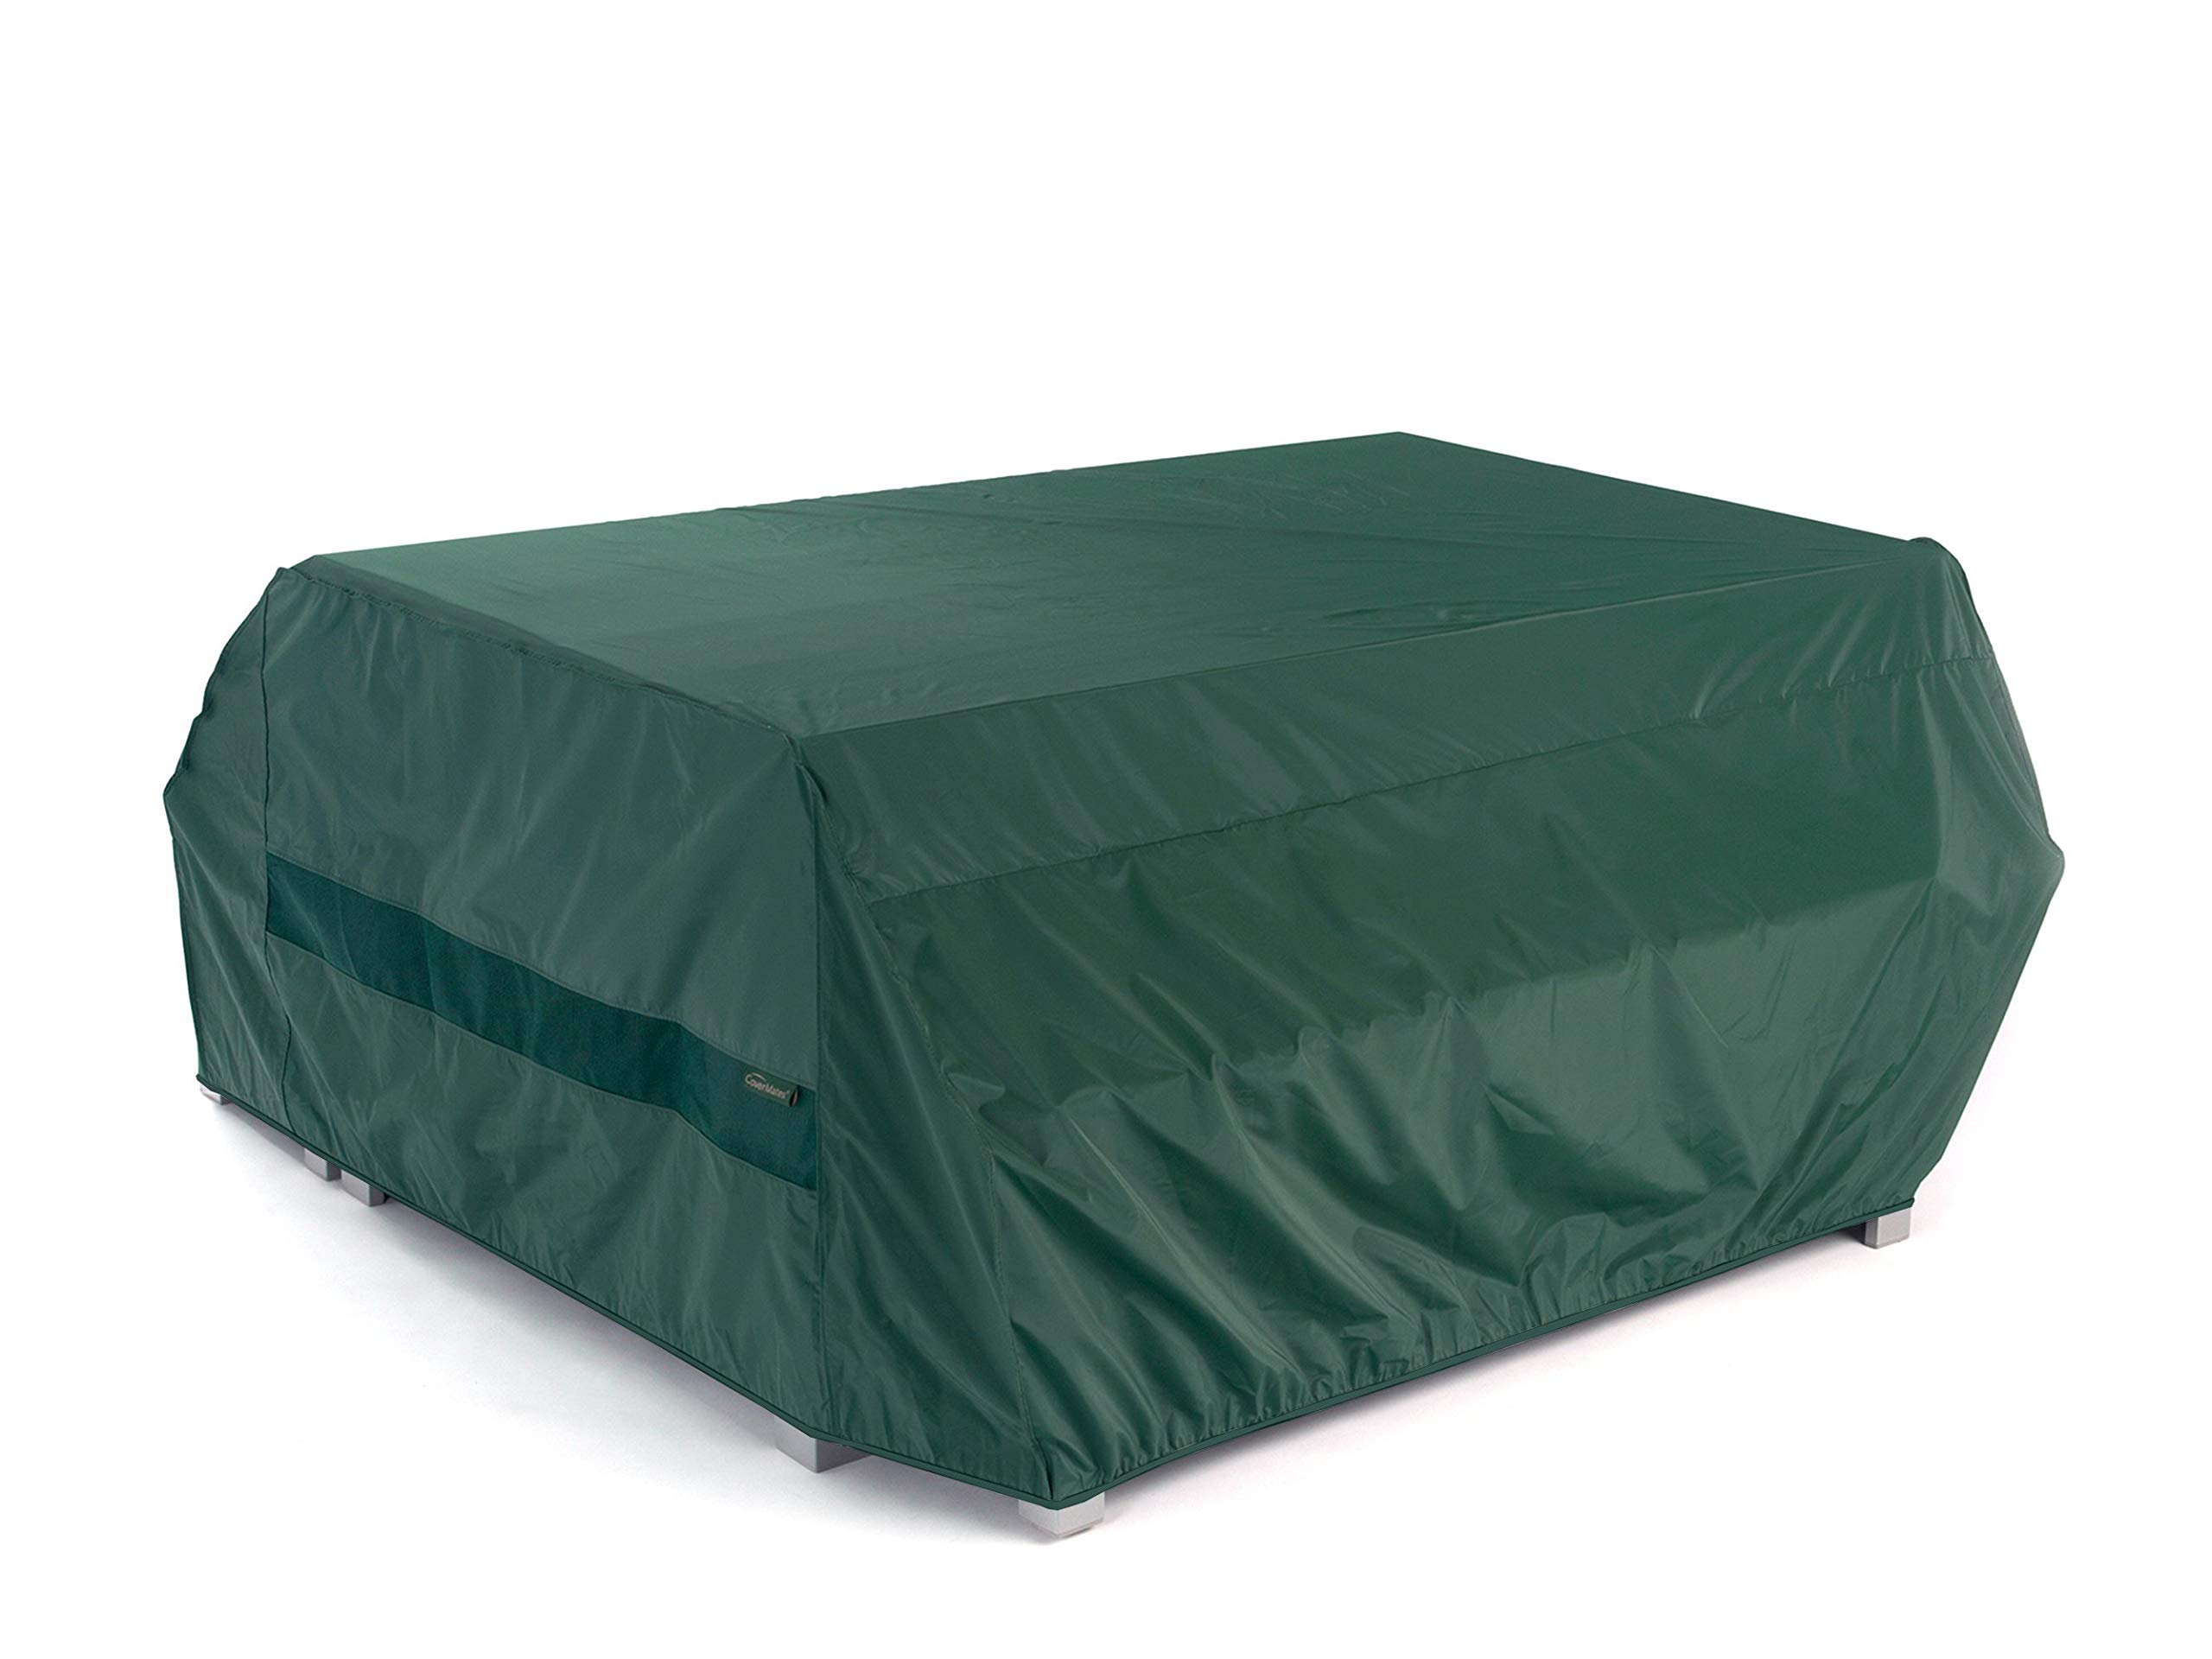 Covermates - Picnic Table Cover - 76W x 62D x 32H - Classic - 12-Gauge Vinyl - Polyester Lining - Elastic Hem - 2 YR Warranty - Weather Resistant - Green by Covermates